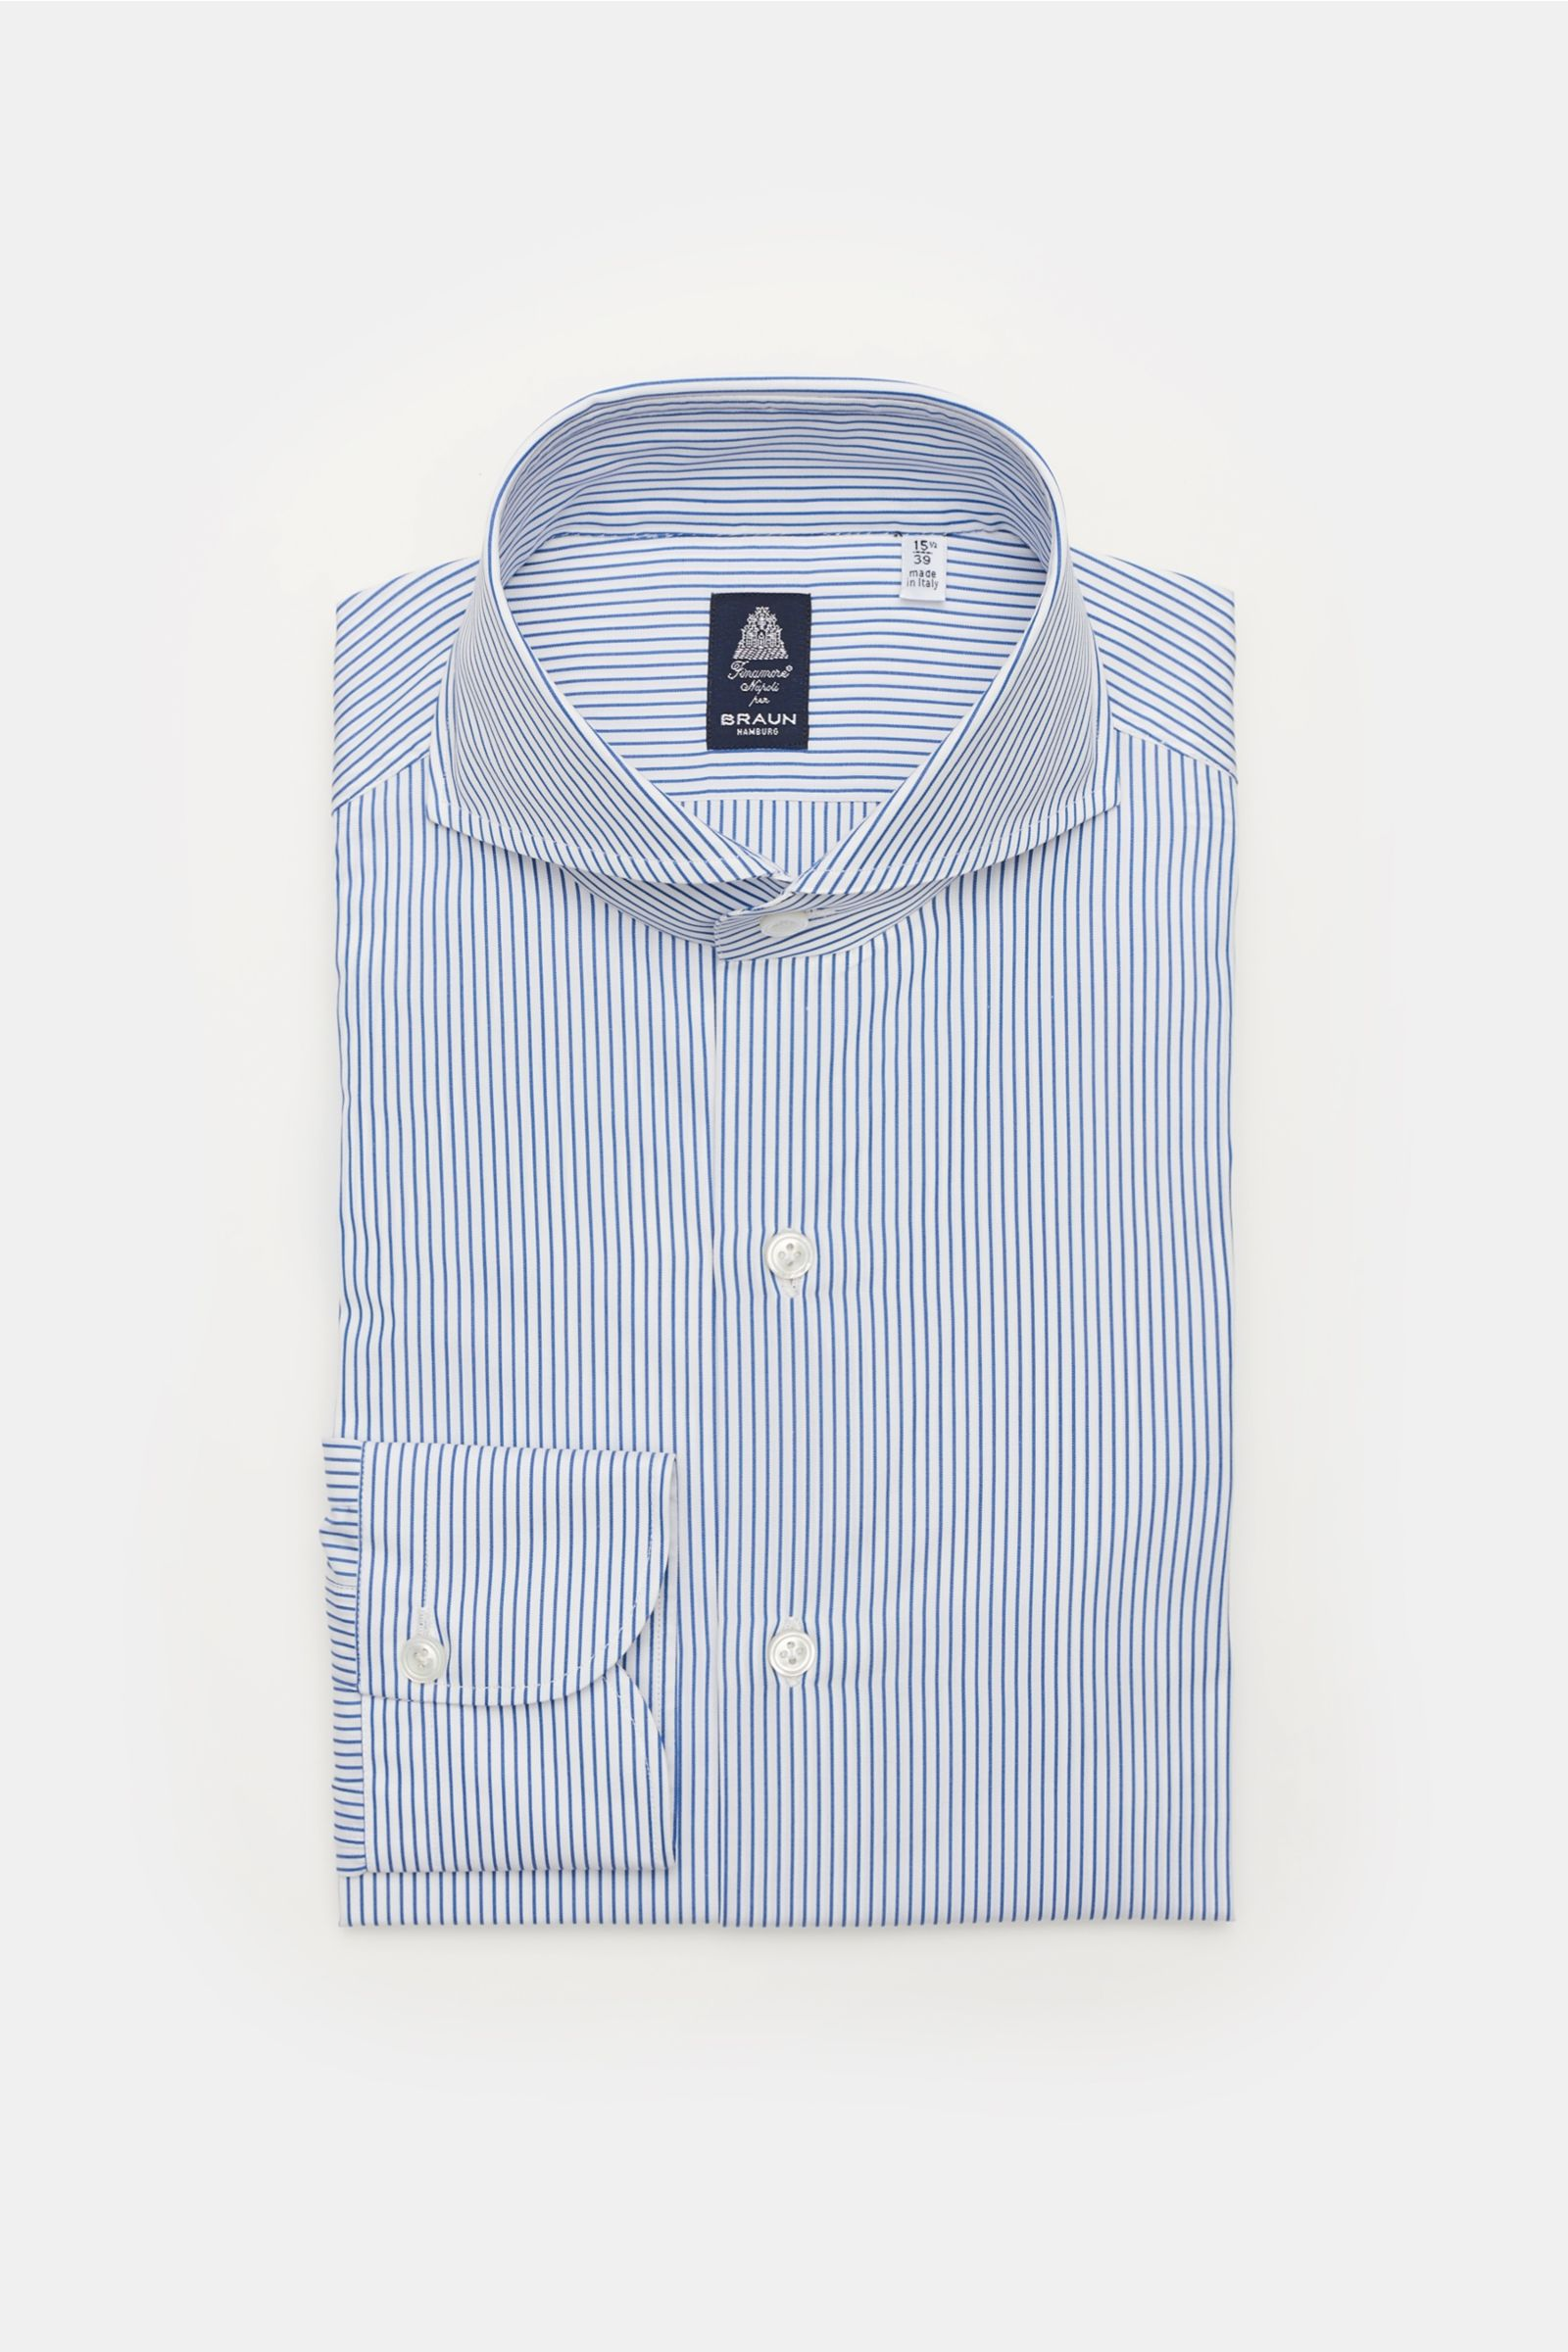 Business shirt 'Sergio Napoli' shark collar dark blue/white striped